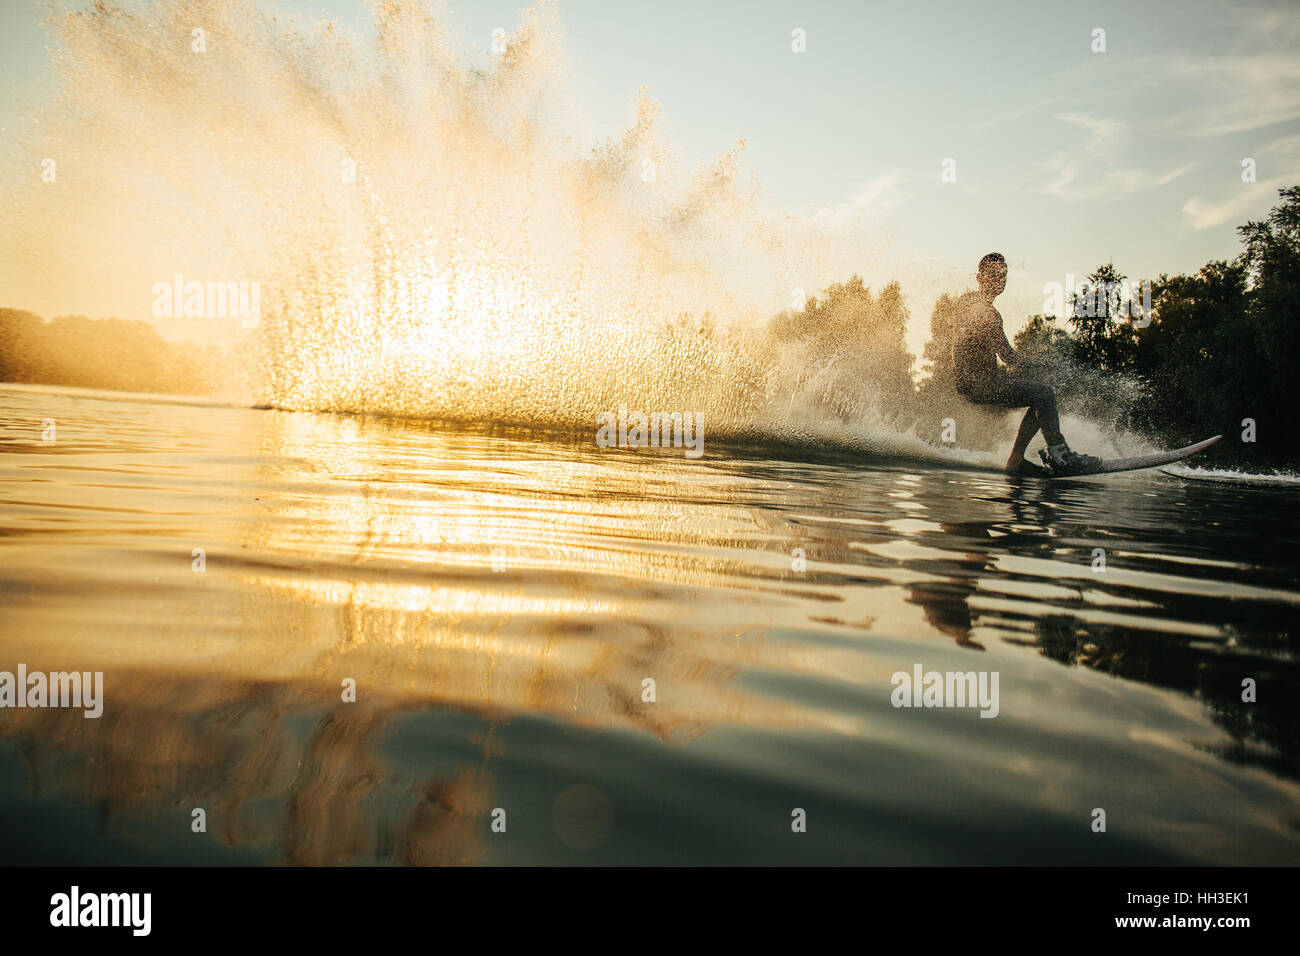 Low angle shot of man wakeboarding on a lake. Man water skiing at sunset. - Stock Image